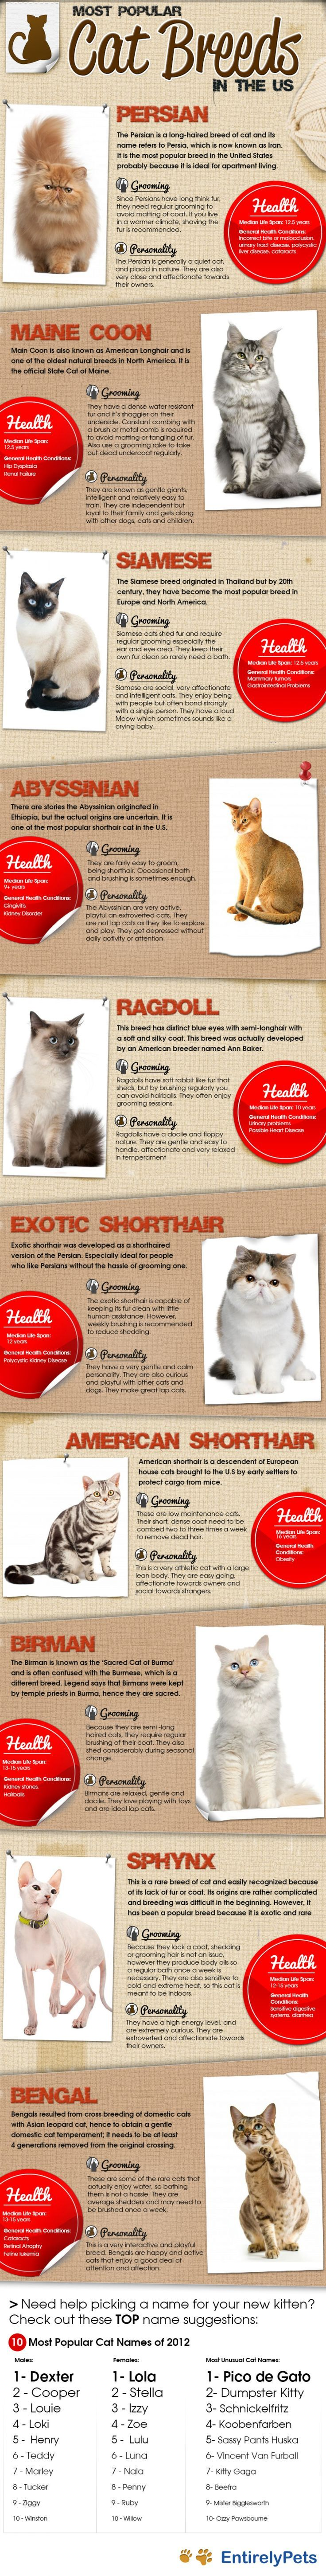 The Most Popular Cat Breeds in the US Infographic - Tap the link now to see all of our cool cat collections!